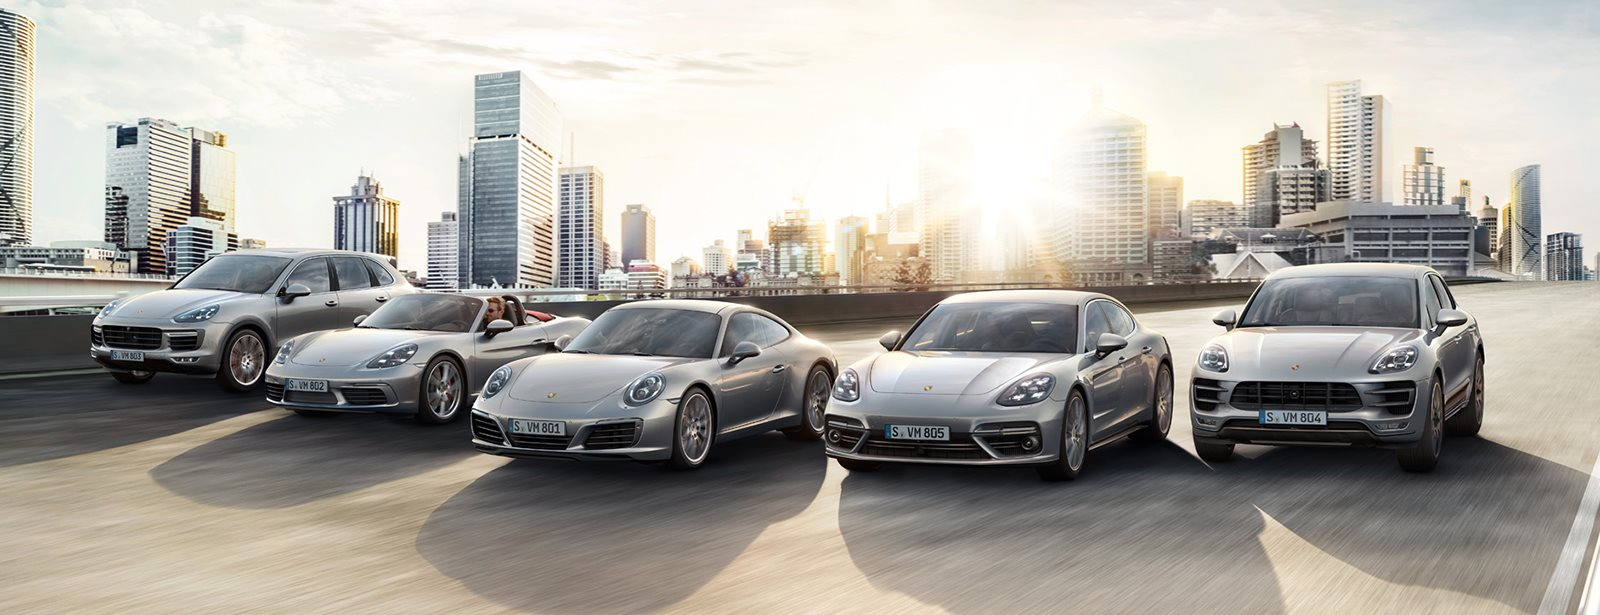 Guide to Buying a Pre-Owned Porsche